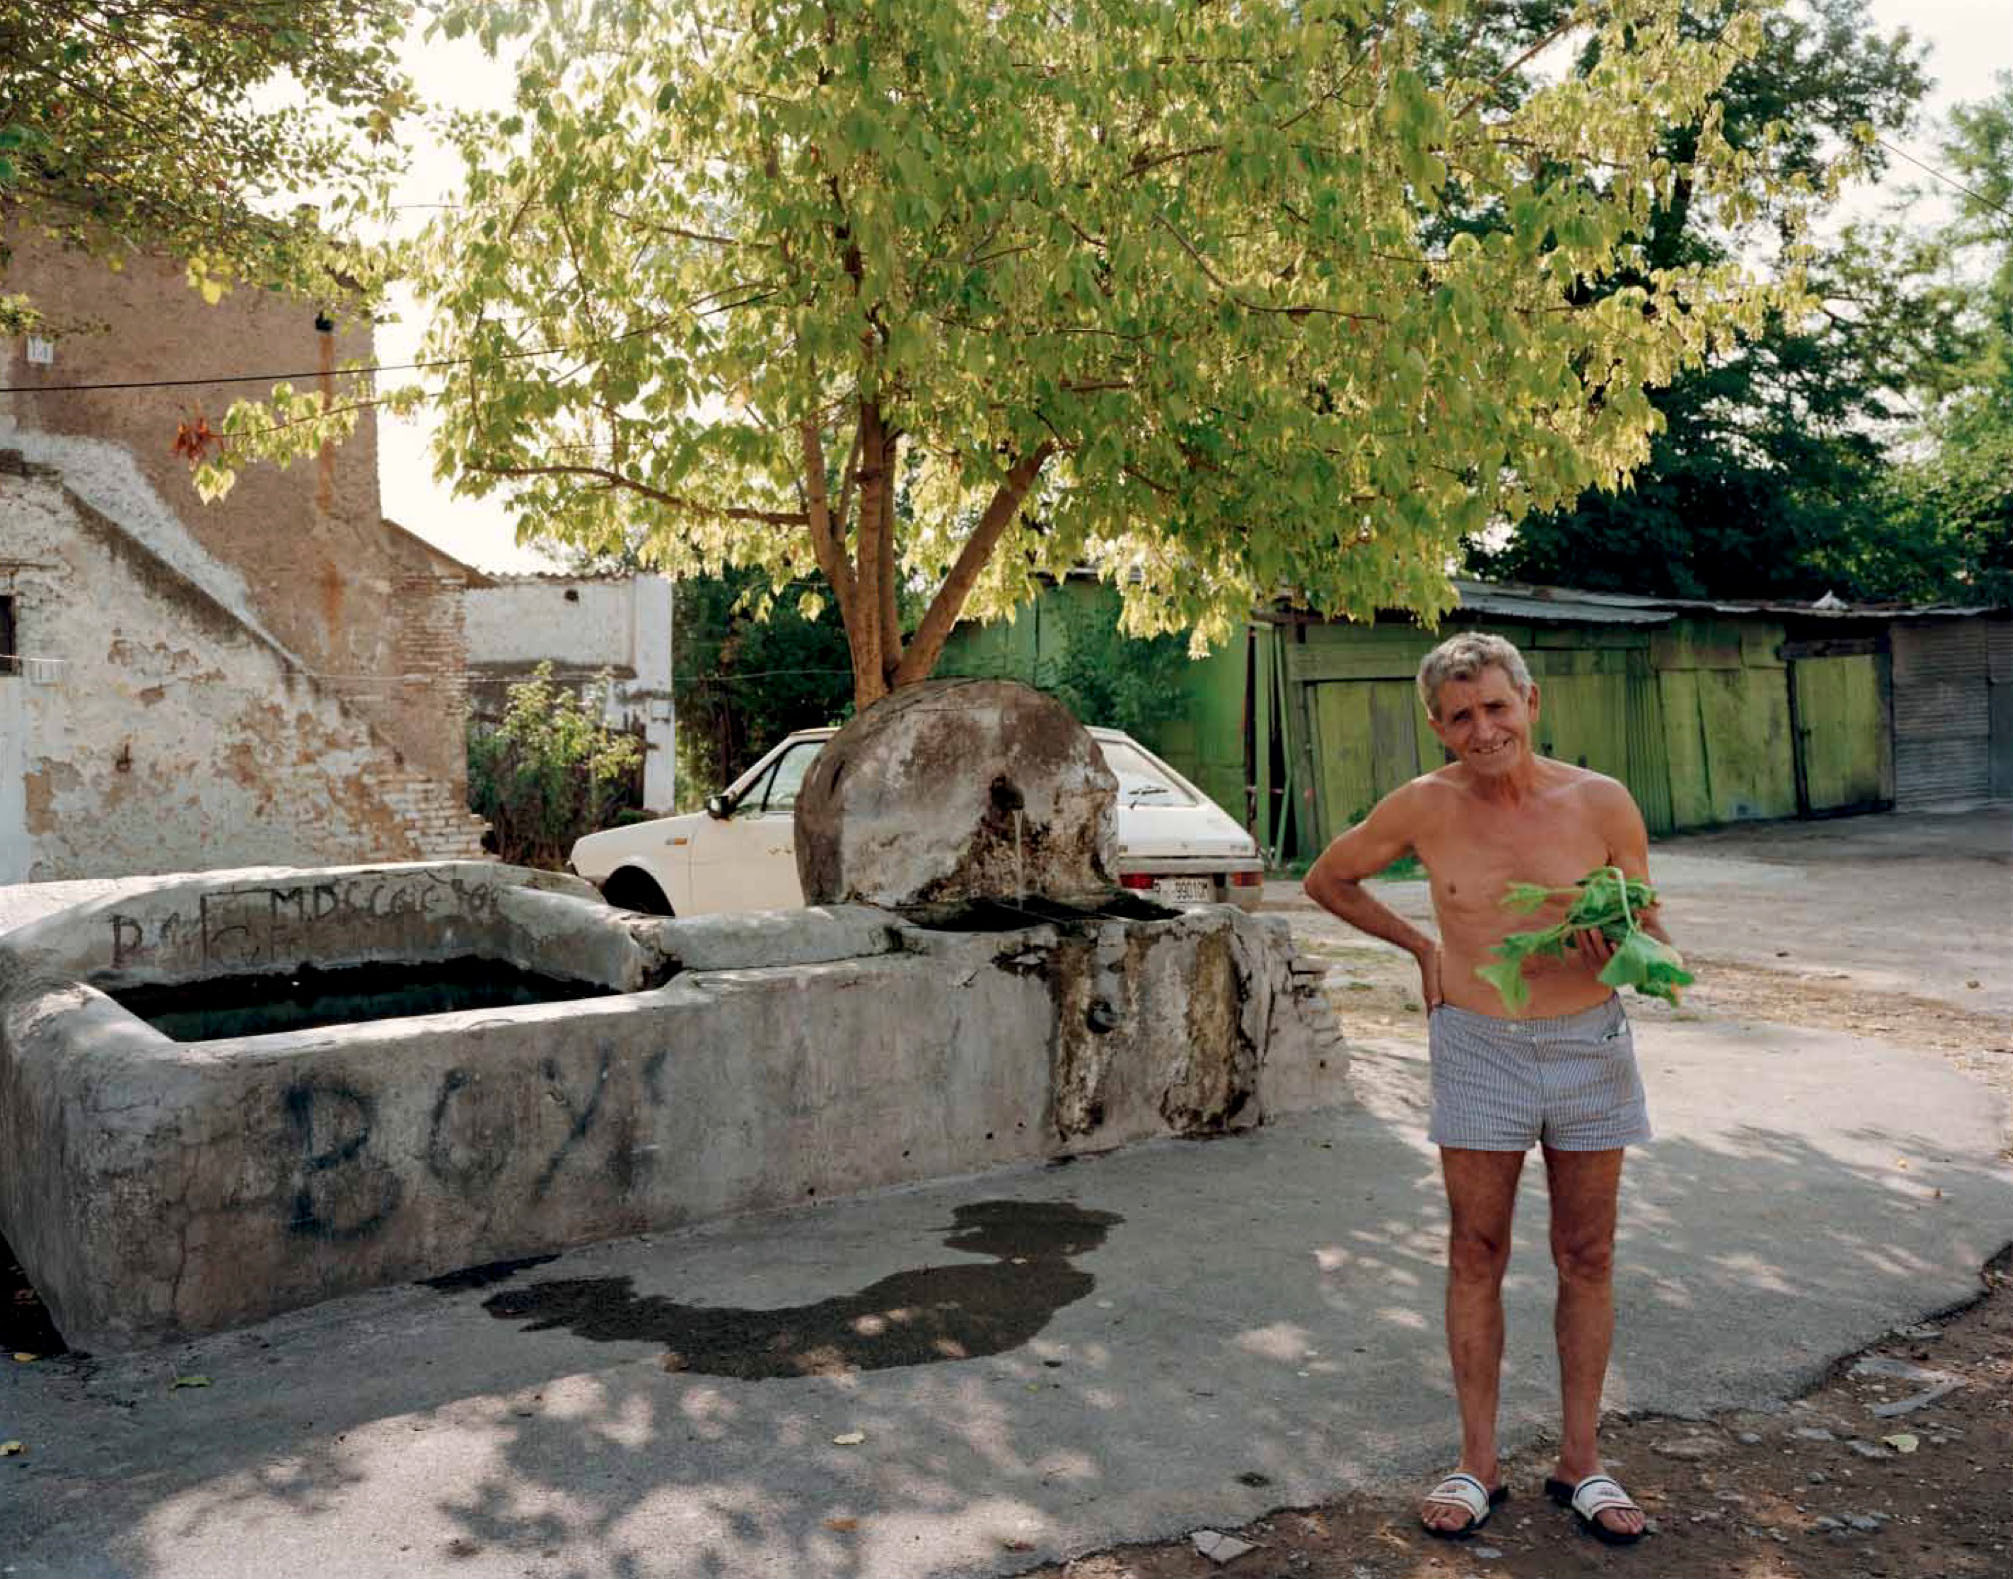 A man who has just washed kohlrabi in a fountain, Roma Vecchia, August 1990